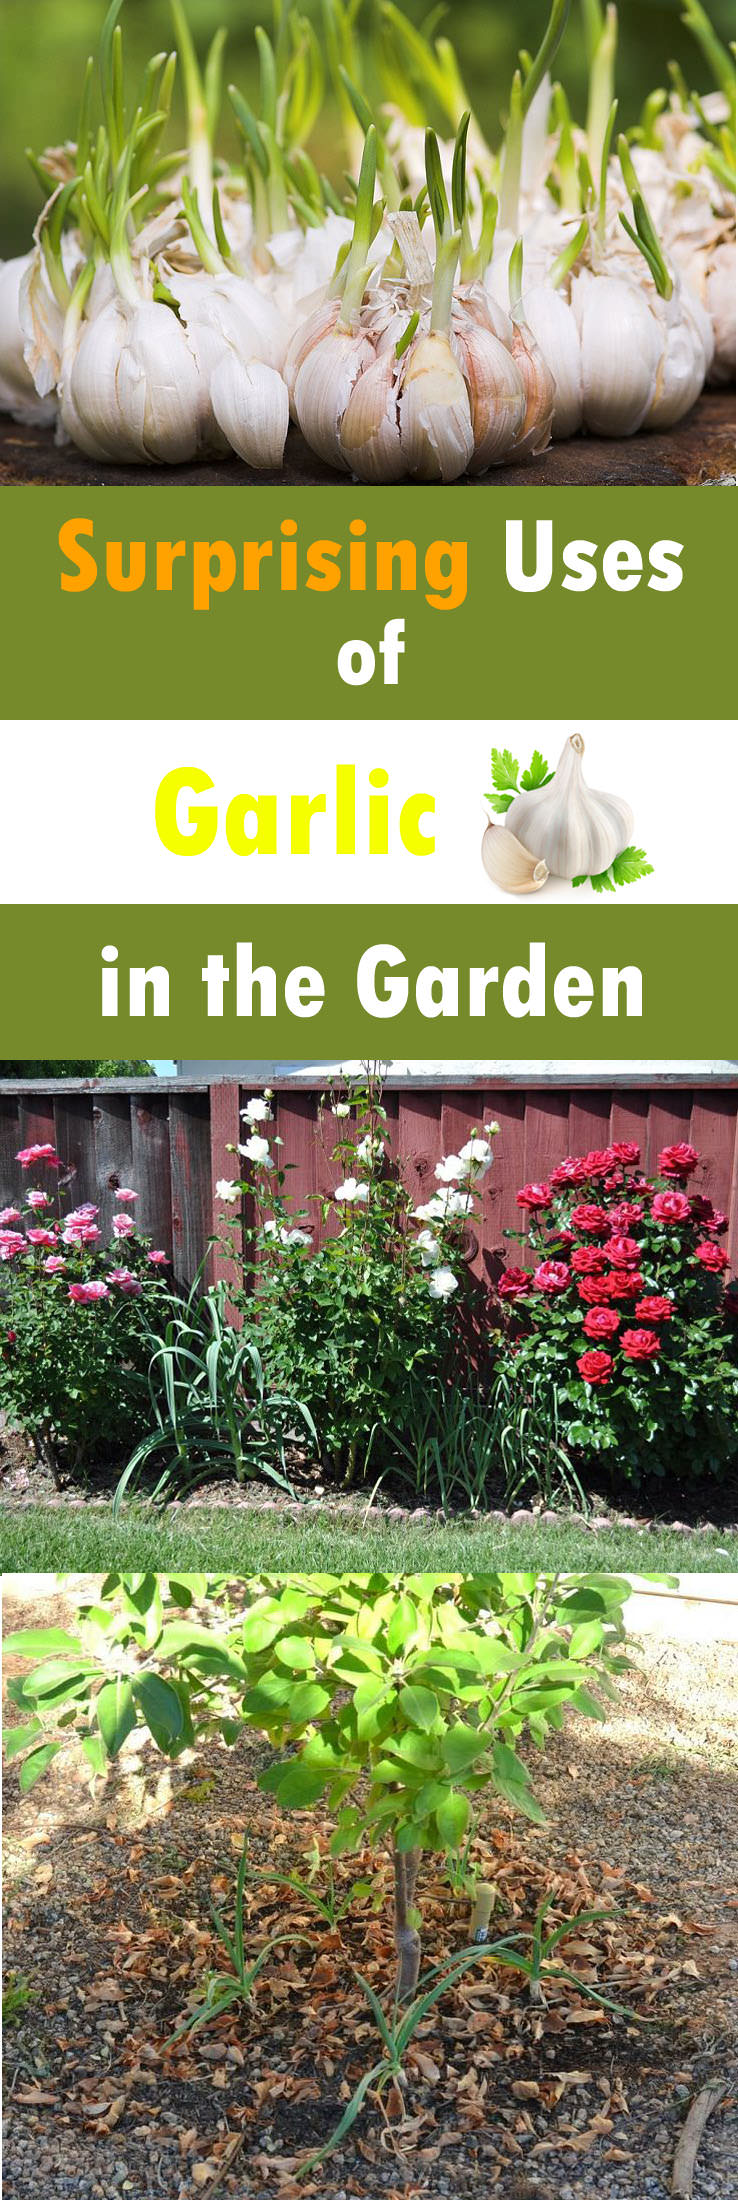 garlic as pectiside Liquefy fresh onions and garlic in a blender, or just use garlic and onion powder steeped with water to make an onion-garlic tea that can be sprayed onto plants or outdoor surfaces where you .